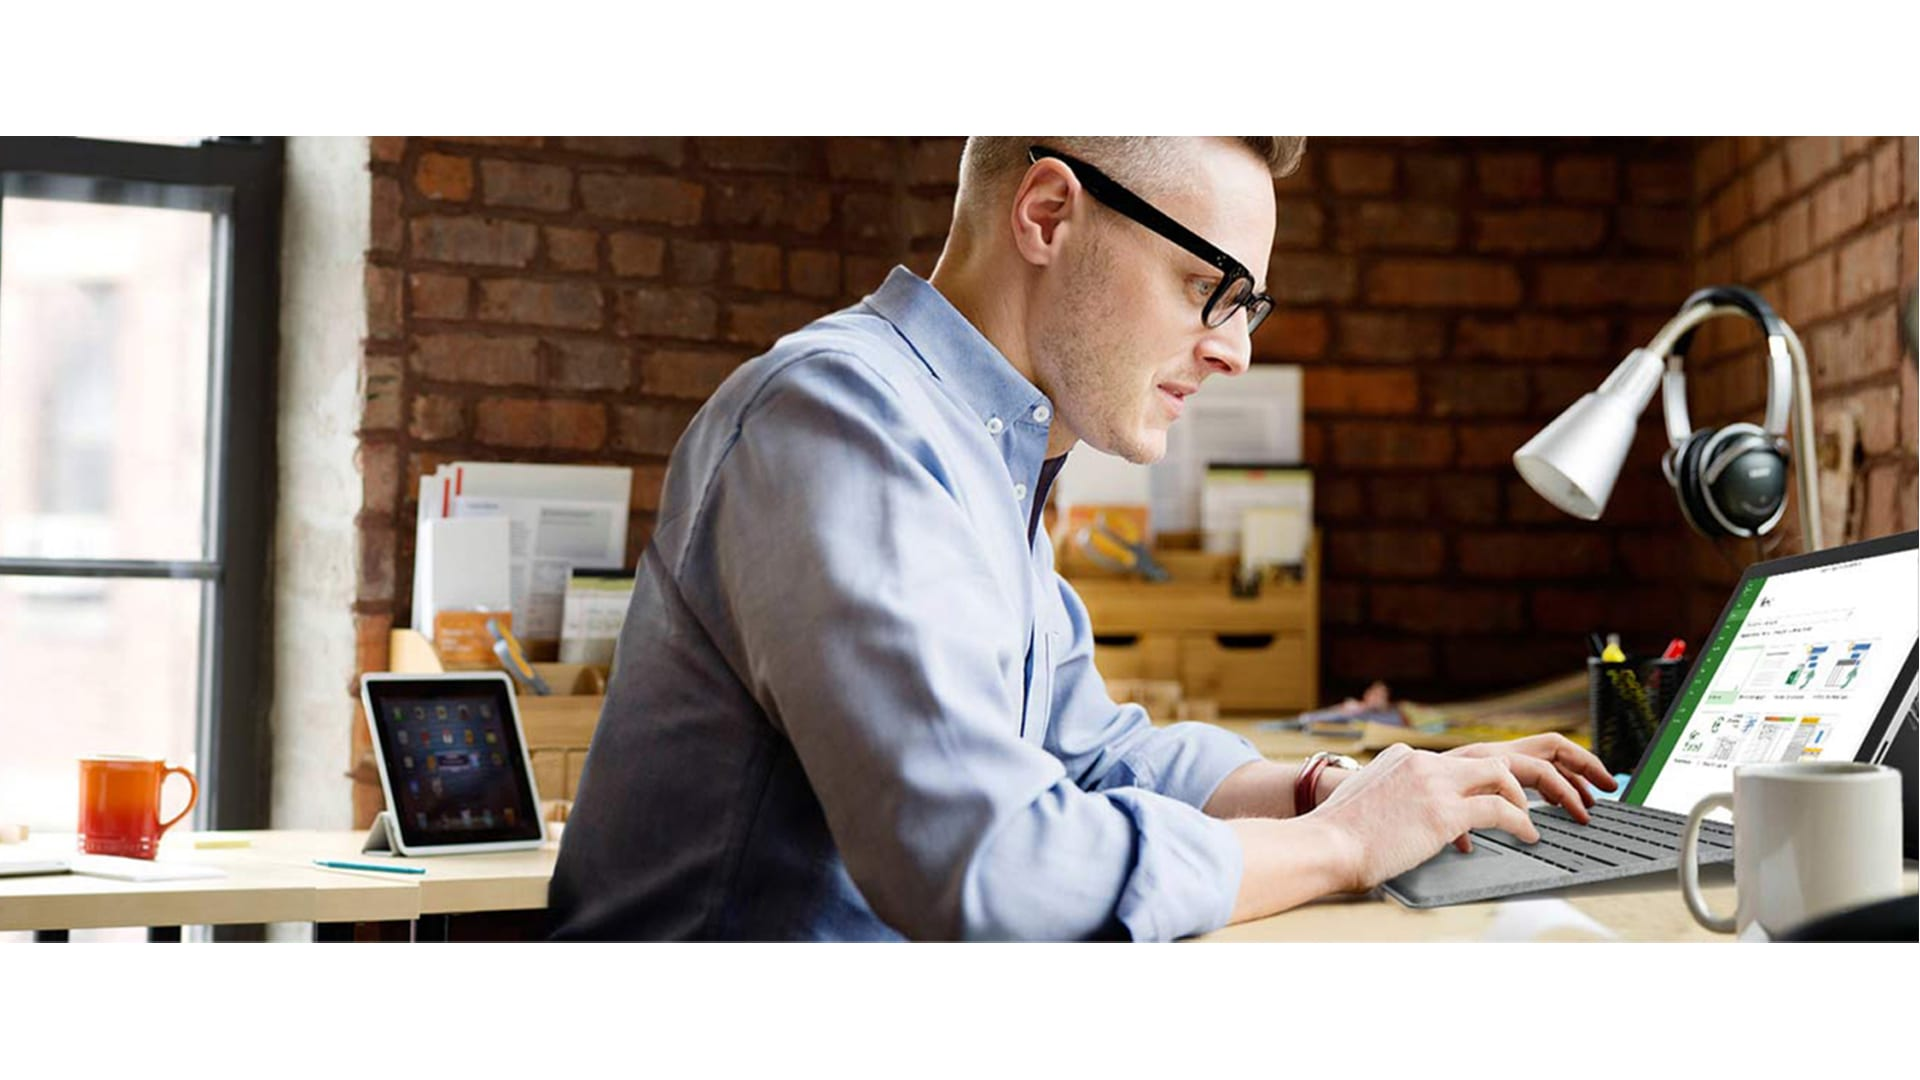 Man sitting at desk, working on laptop